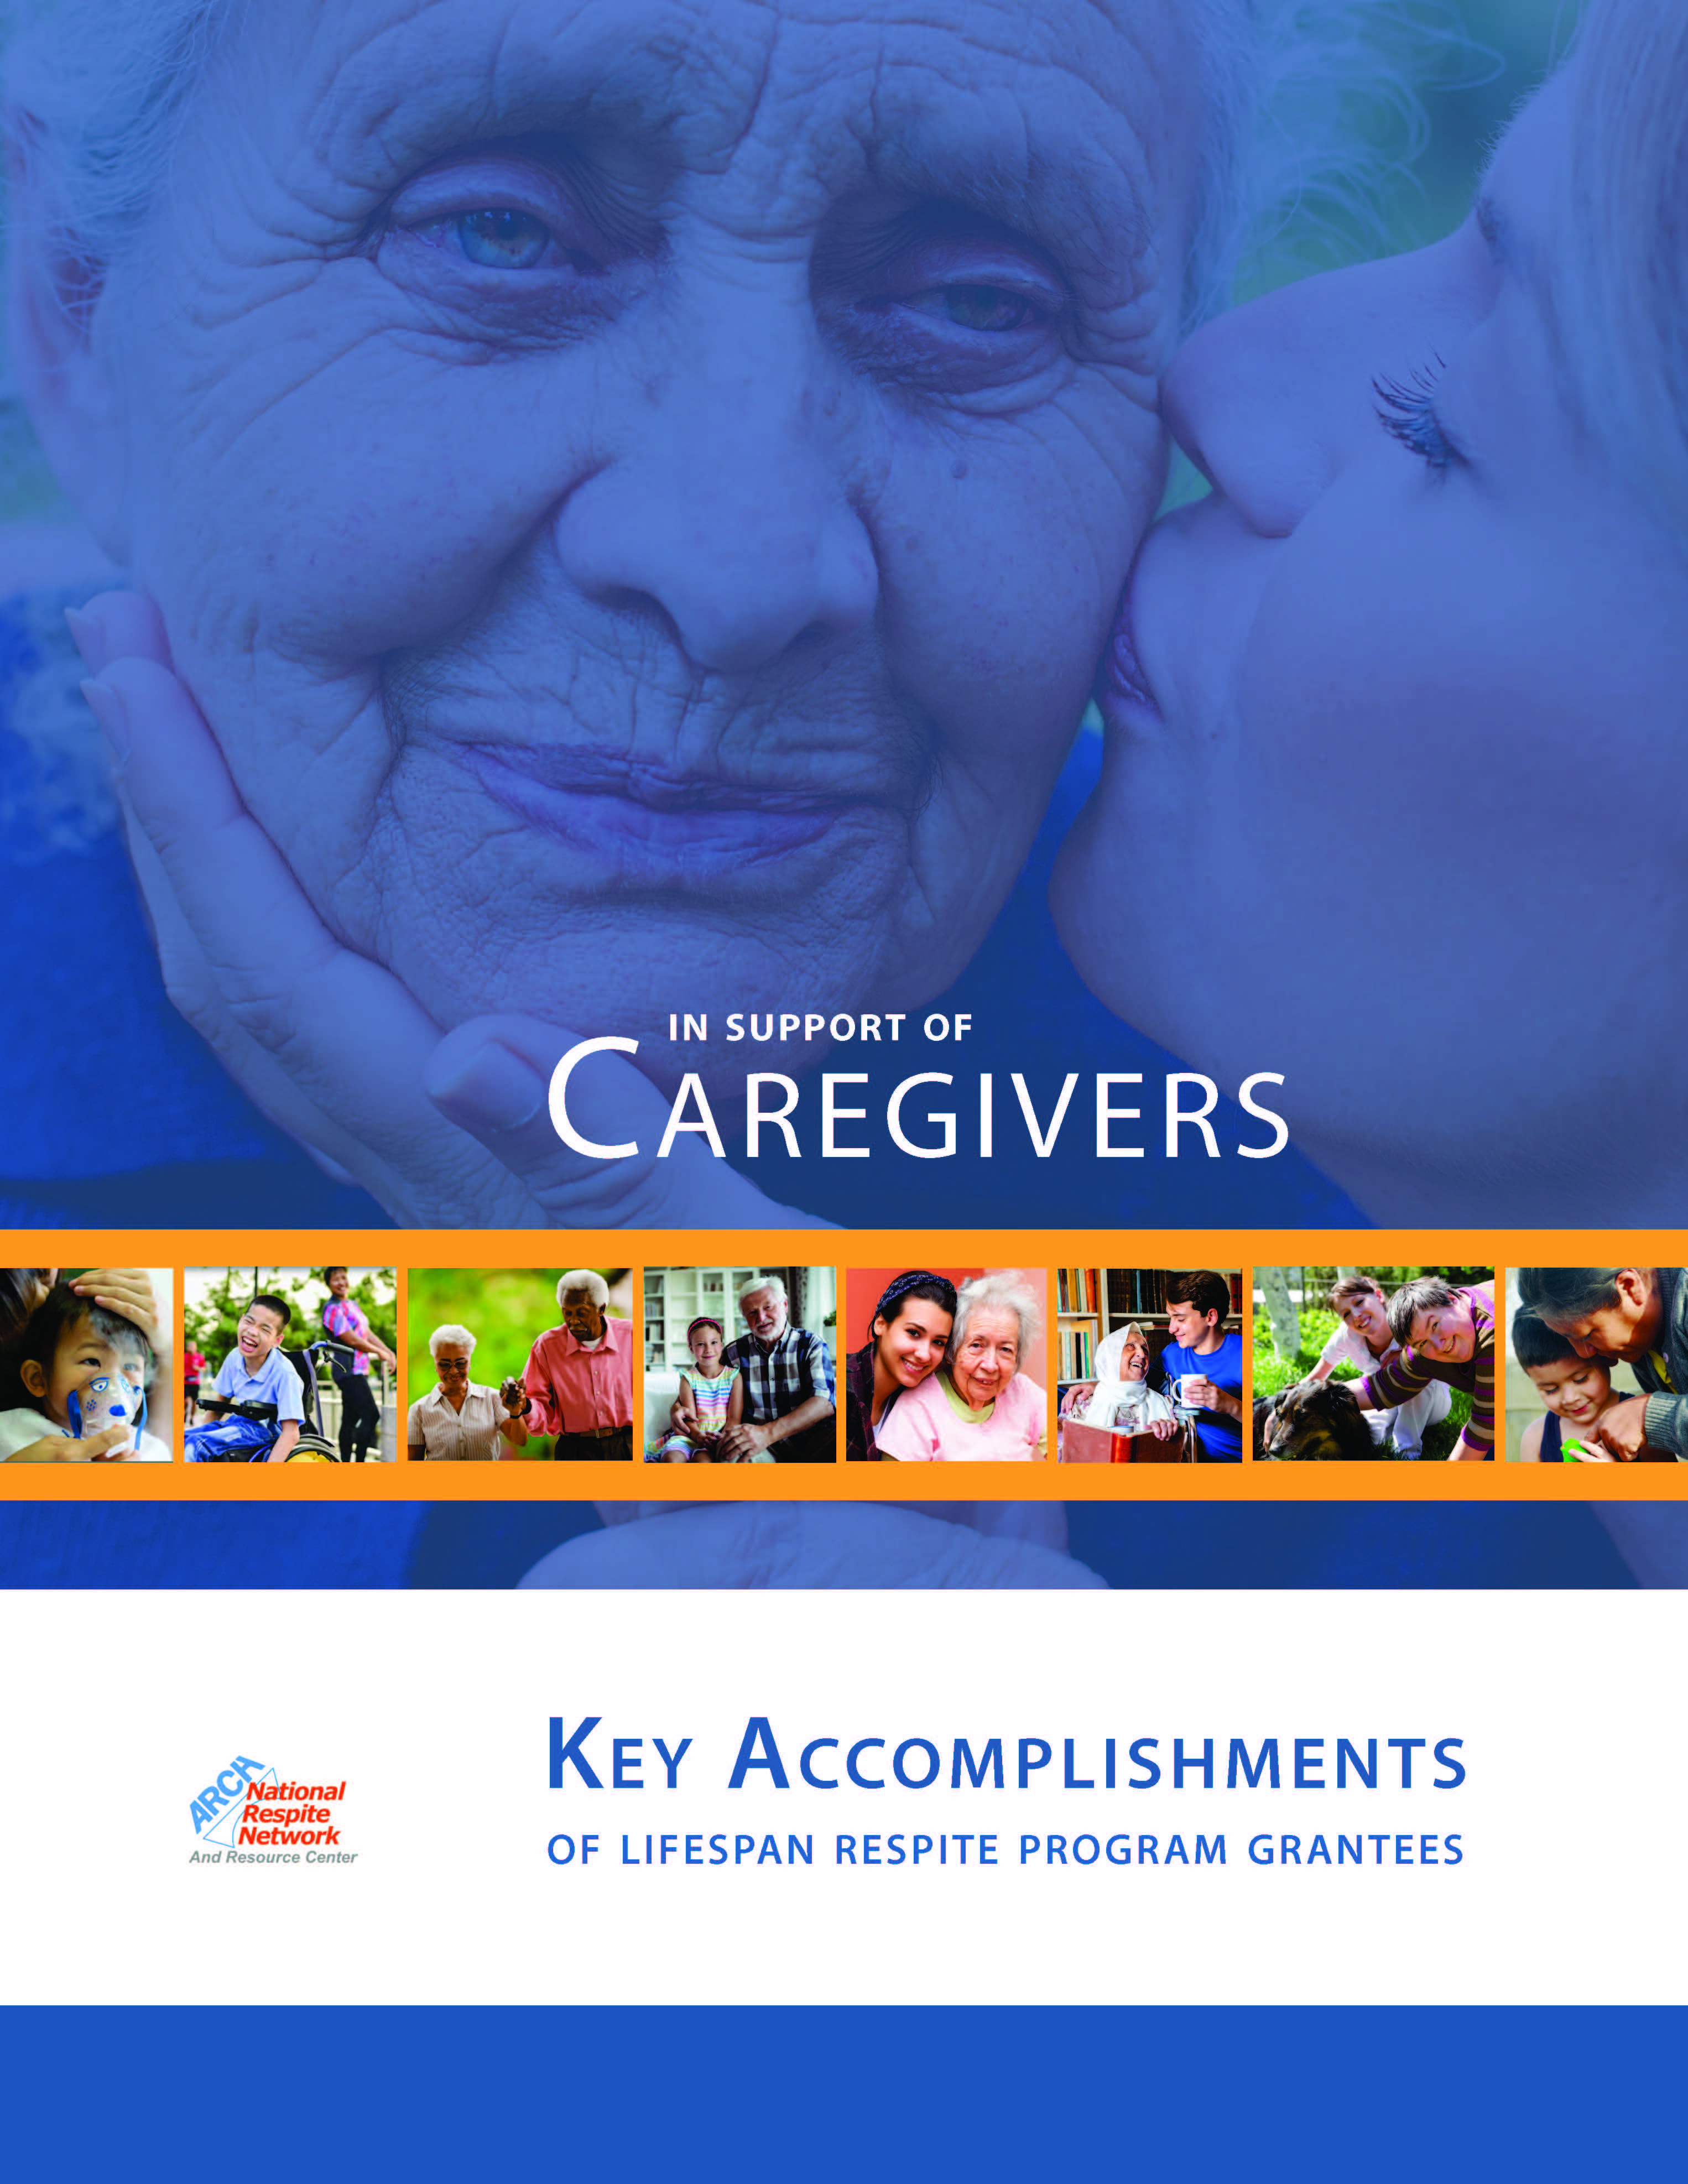 Caregivers Screen 06 06 2021